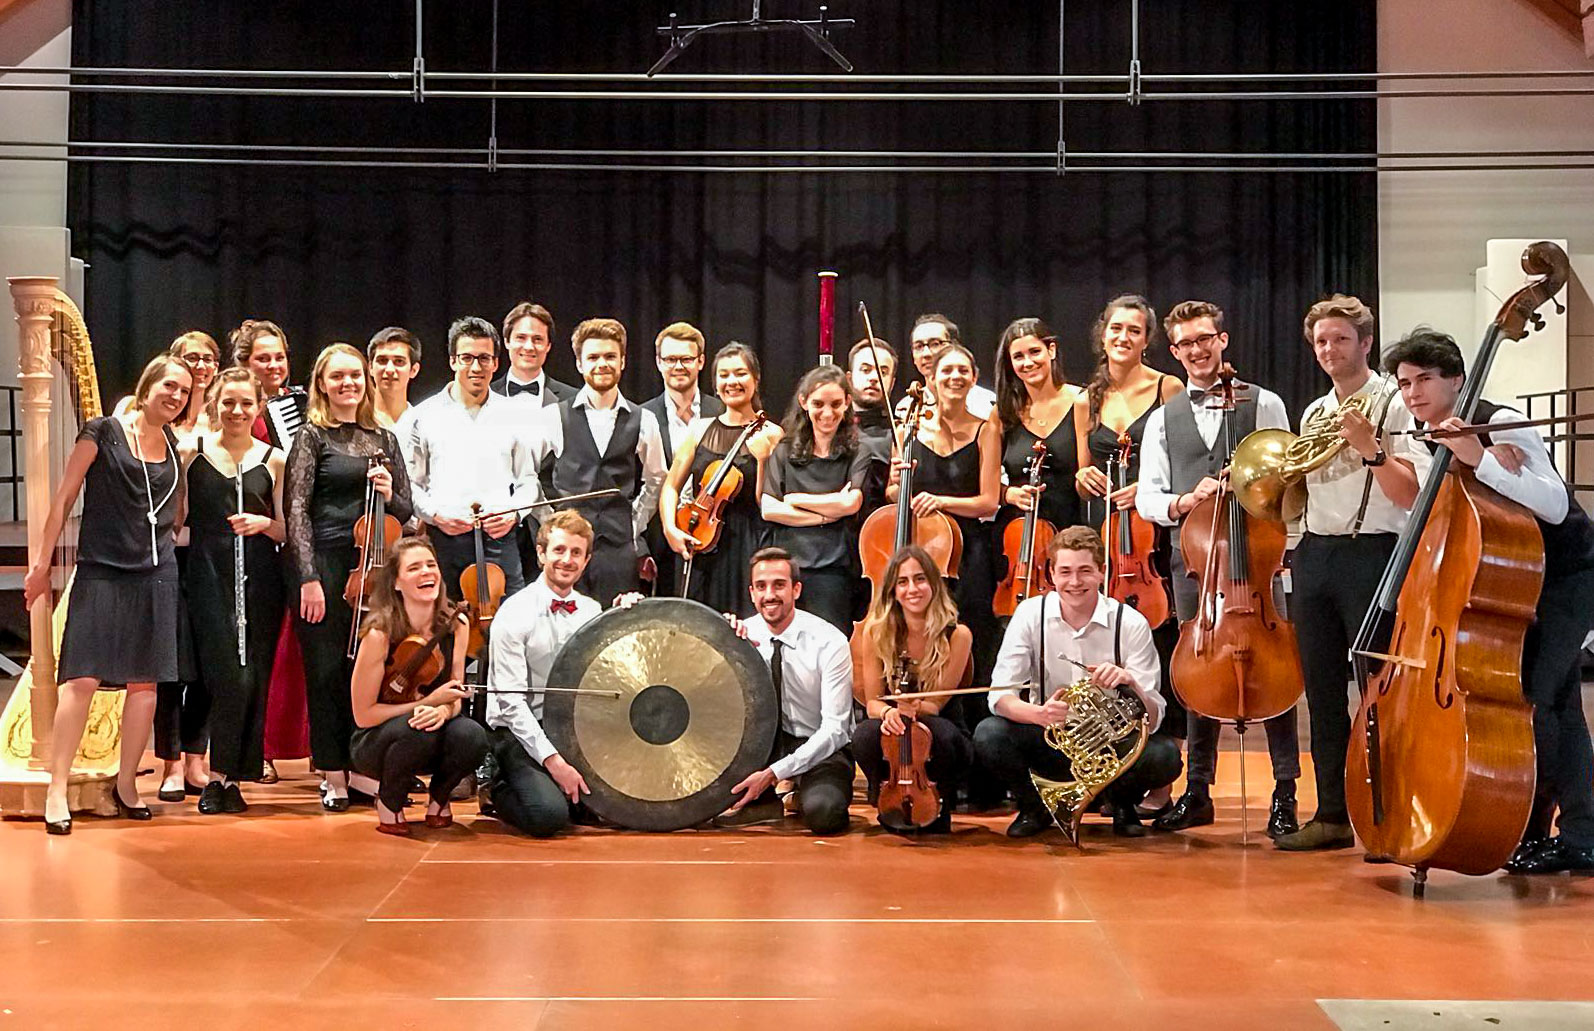 The members of the Alma Mahler Kammerorchester after our recording session in Ochsenhausen.